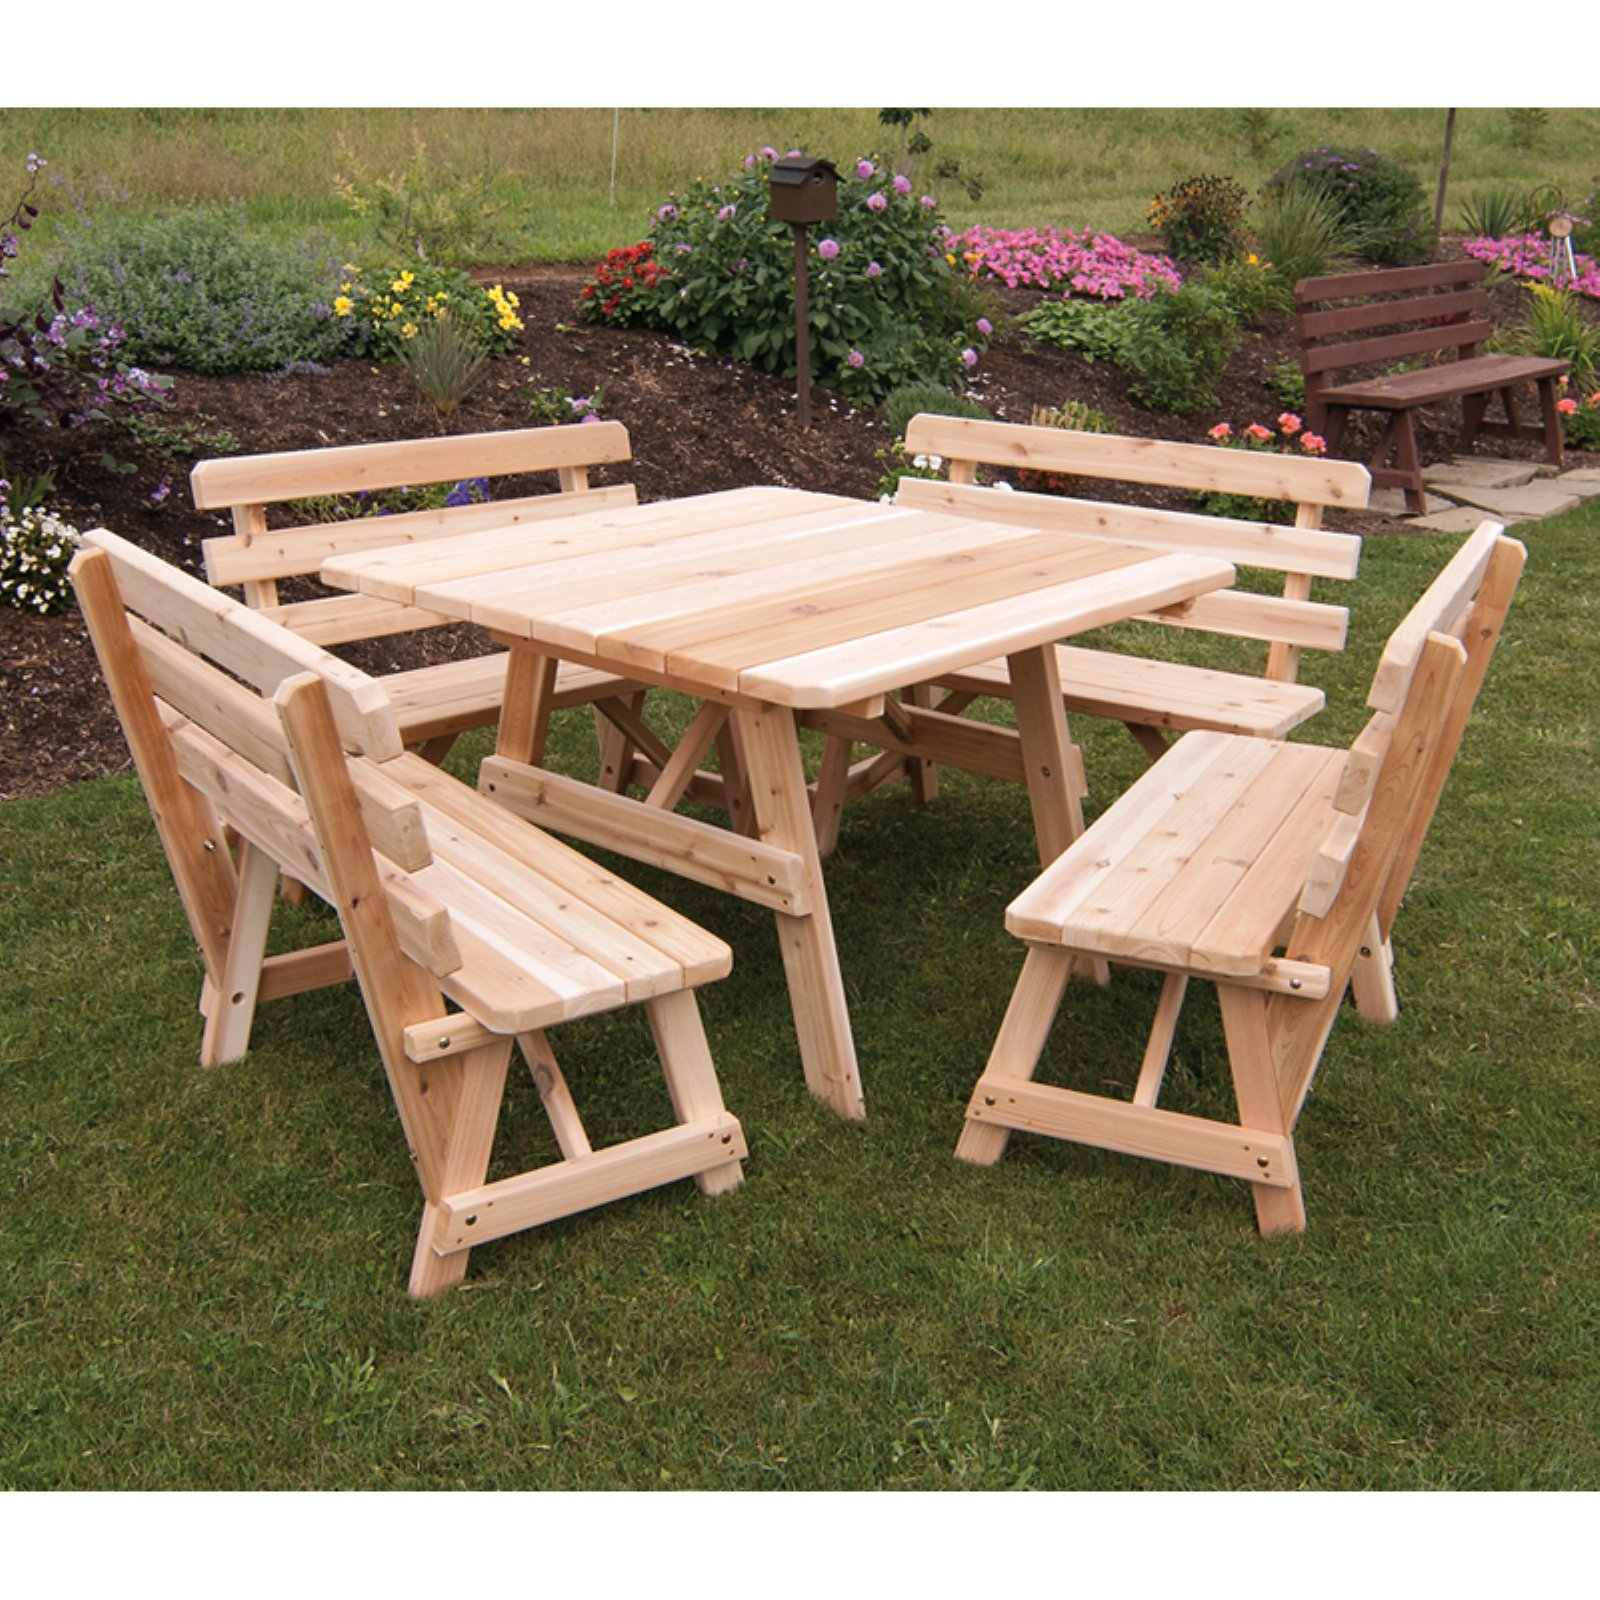 A & L Furniture Western Red Cedar 5 pc. 43 in. Square Table Set with 4 Backed Benches and Optional Umbrella... by A and L Furniture Co